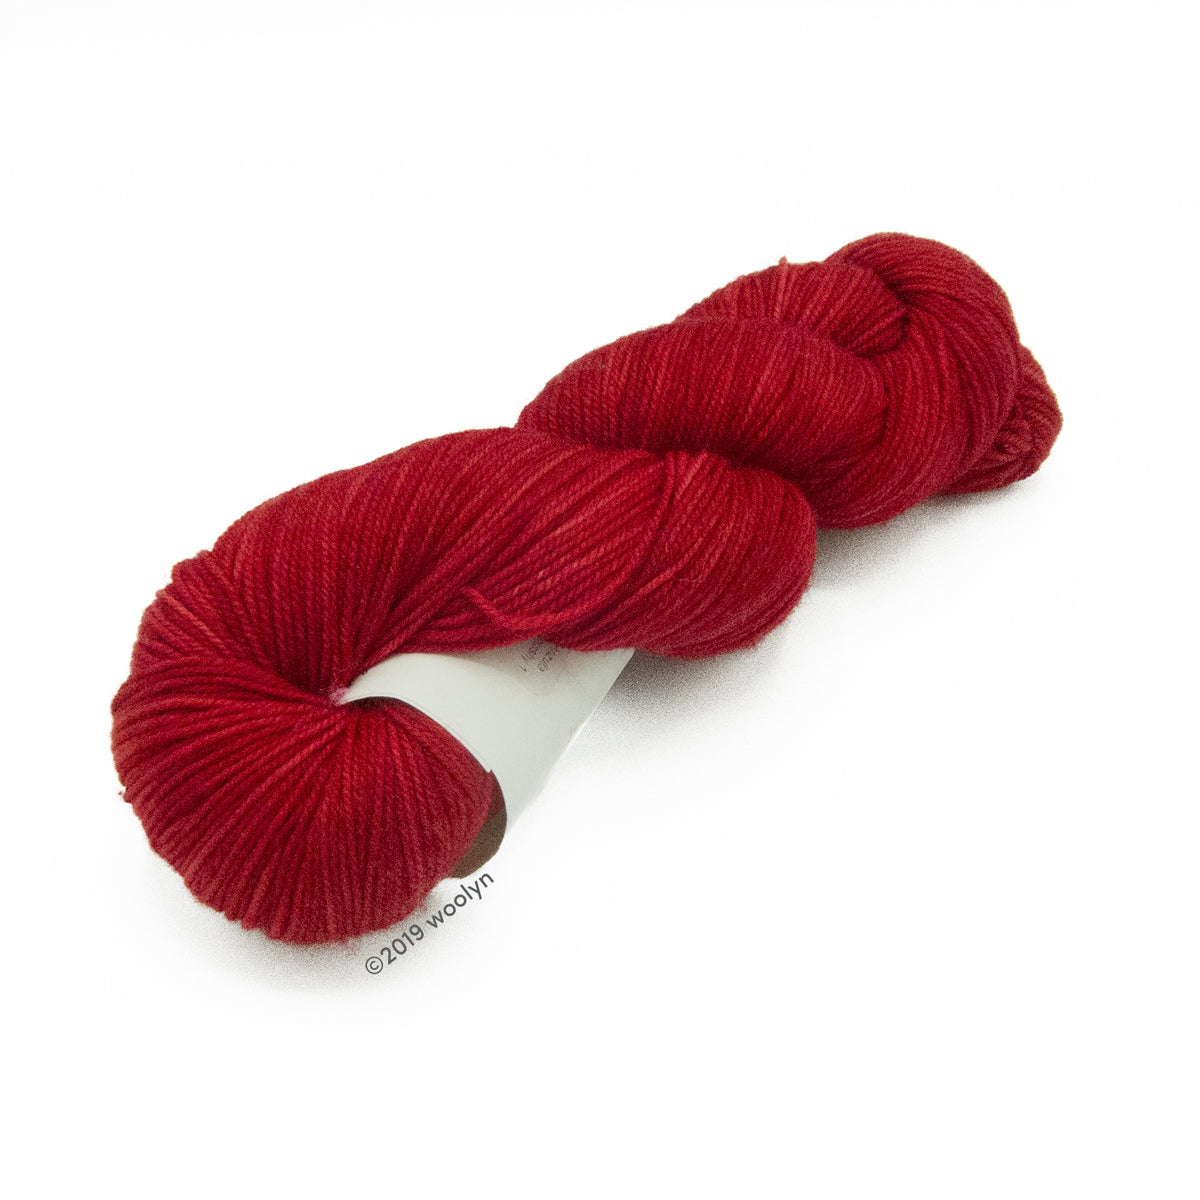 Hand dyed dark red yarn twisted into a skein.